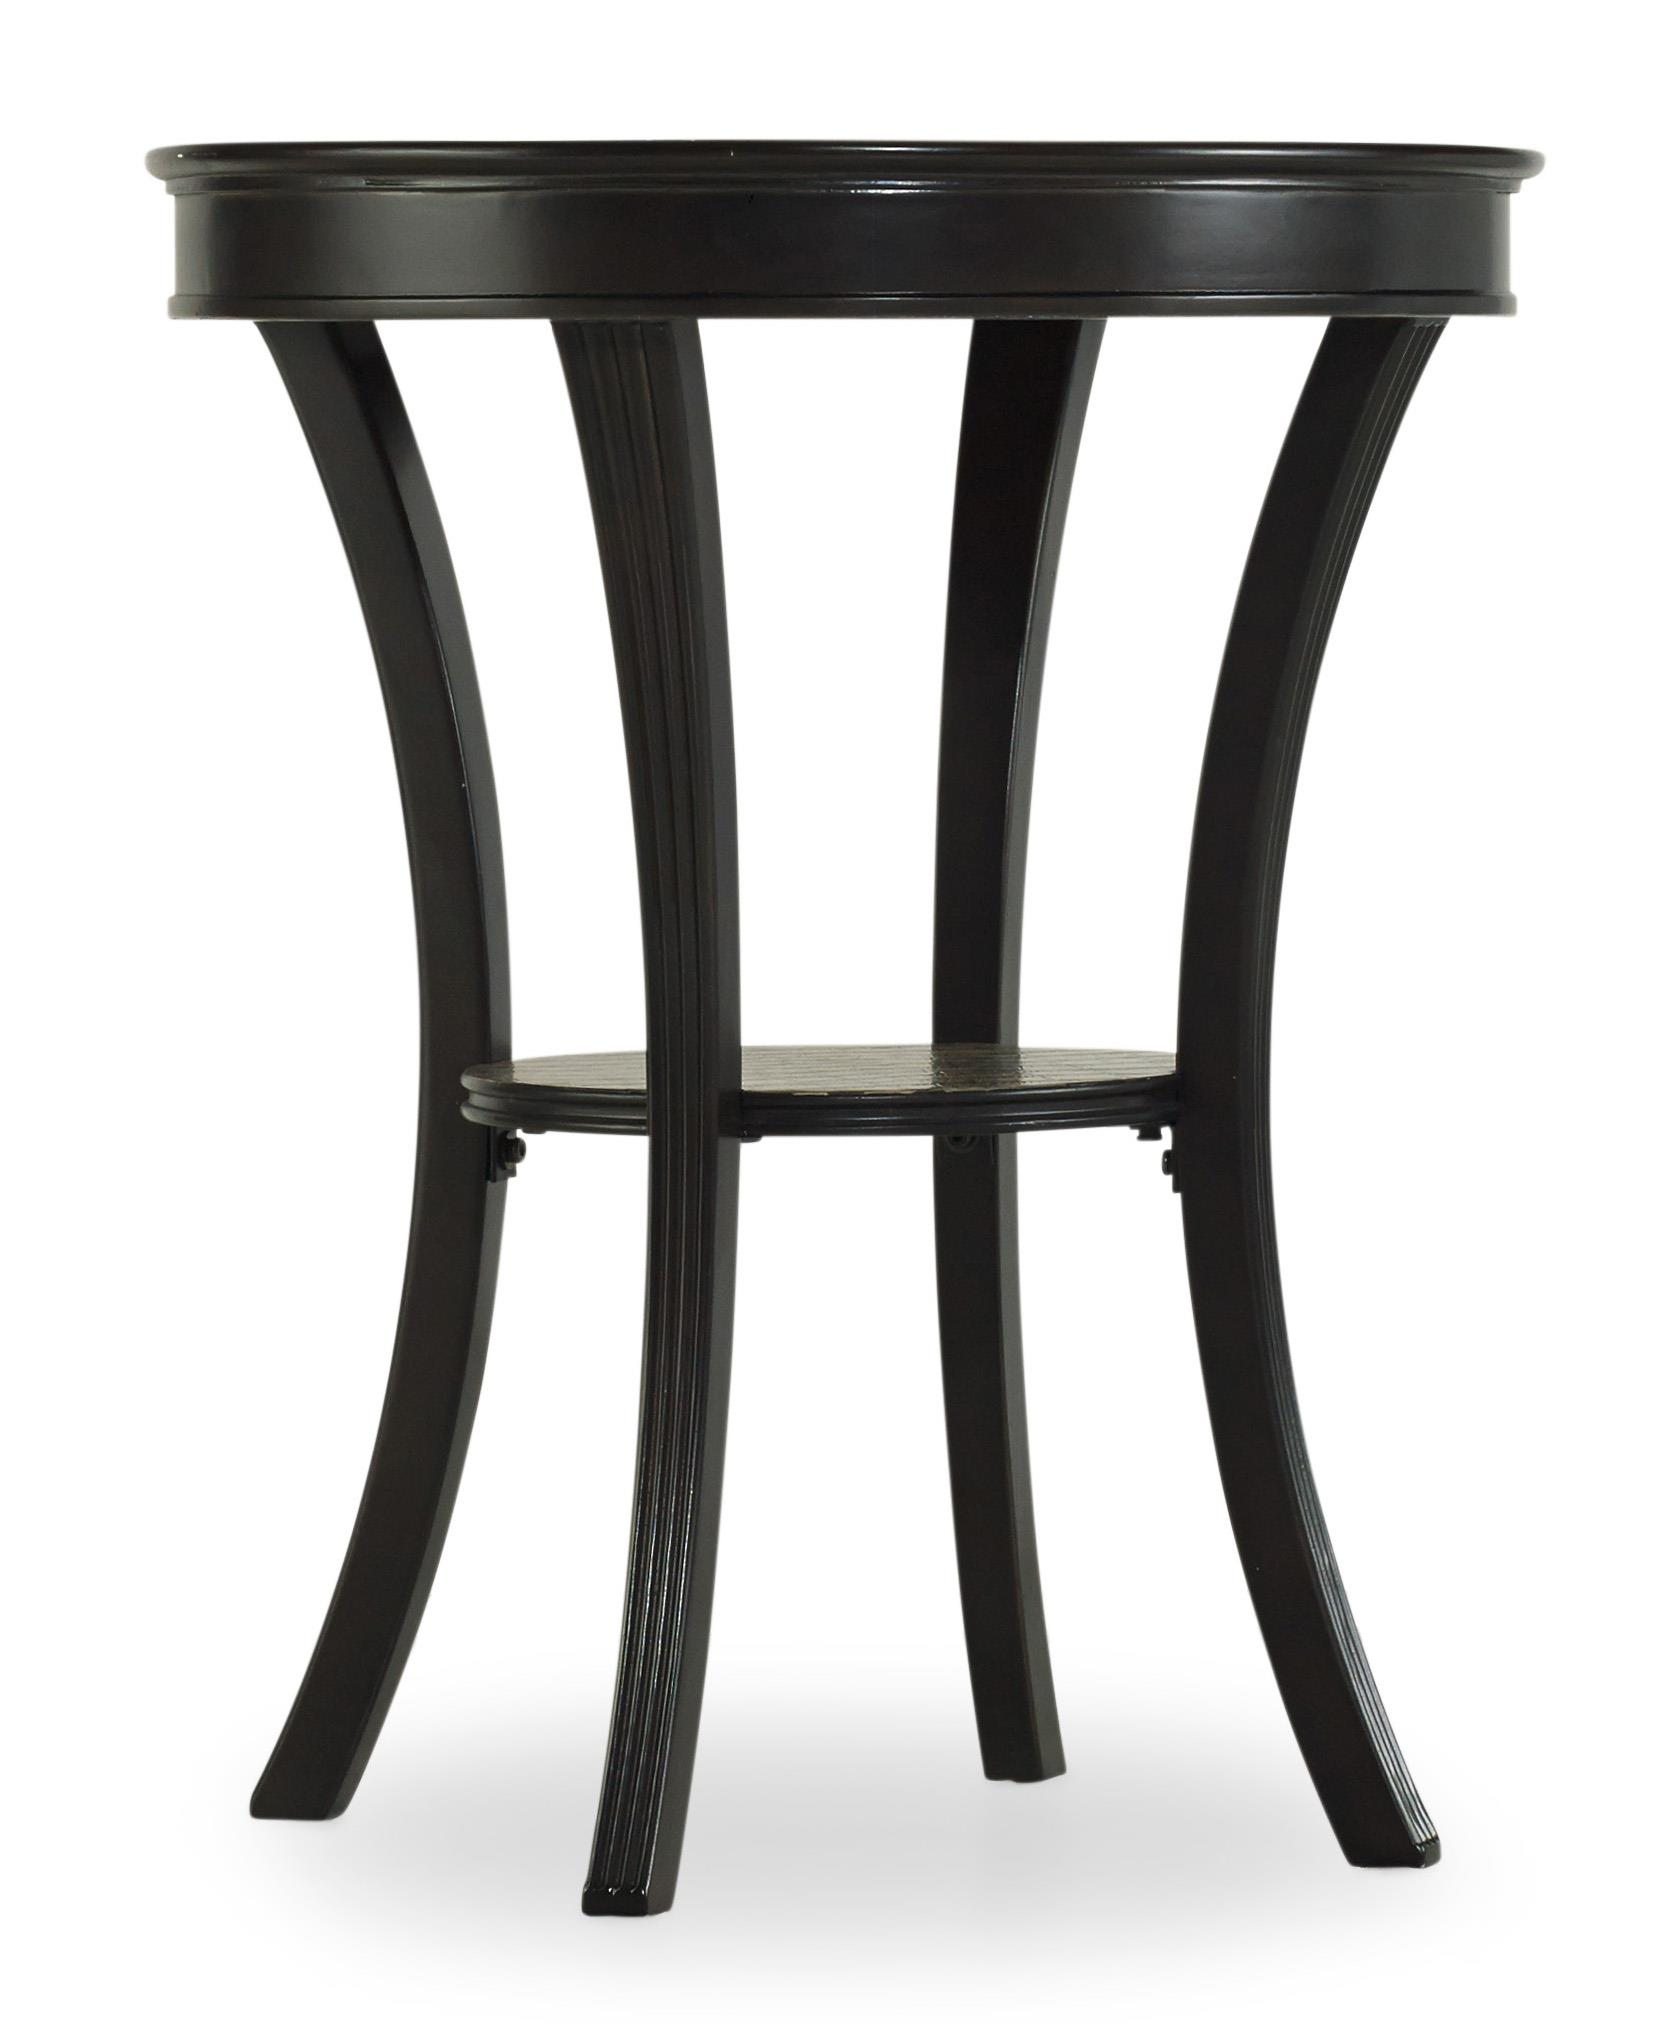 Hooker Furniture Mélange Semblance Accent Table - Item Number: 638-50124